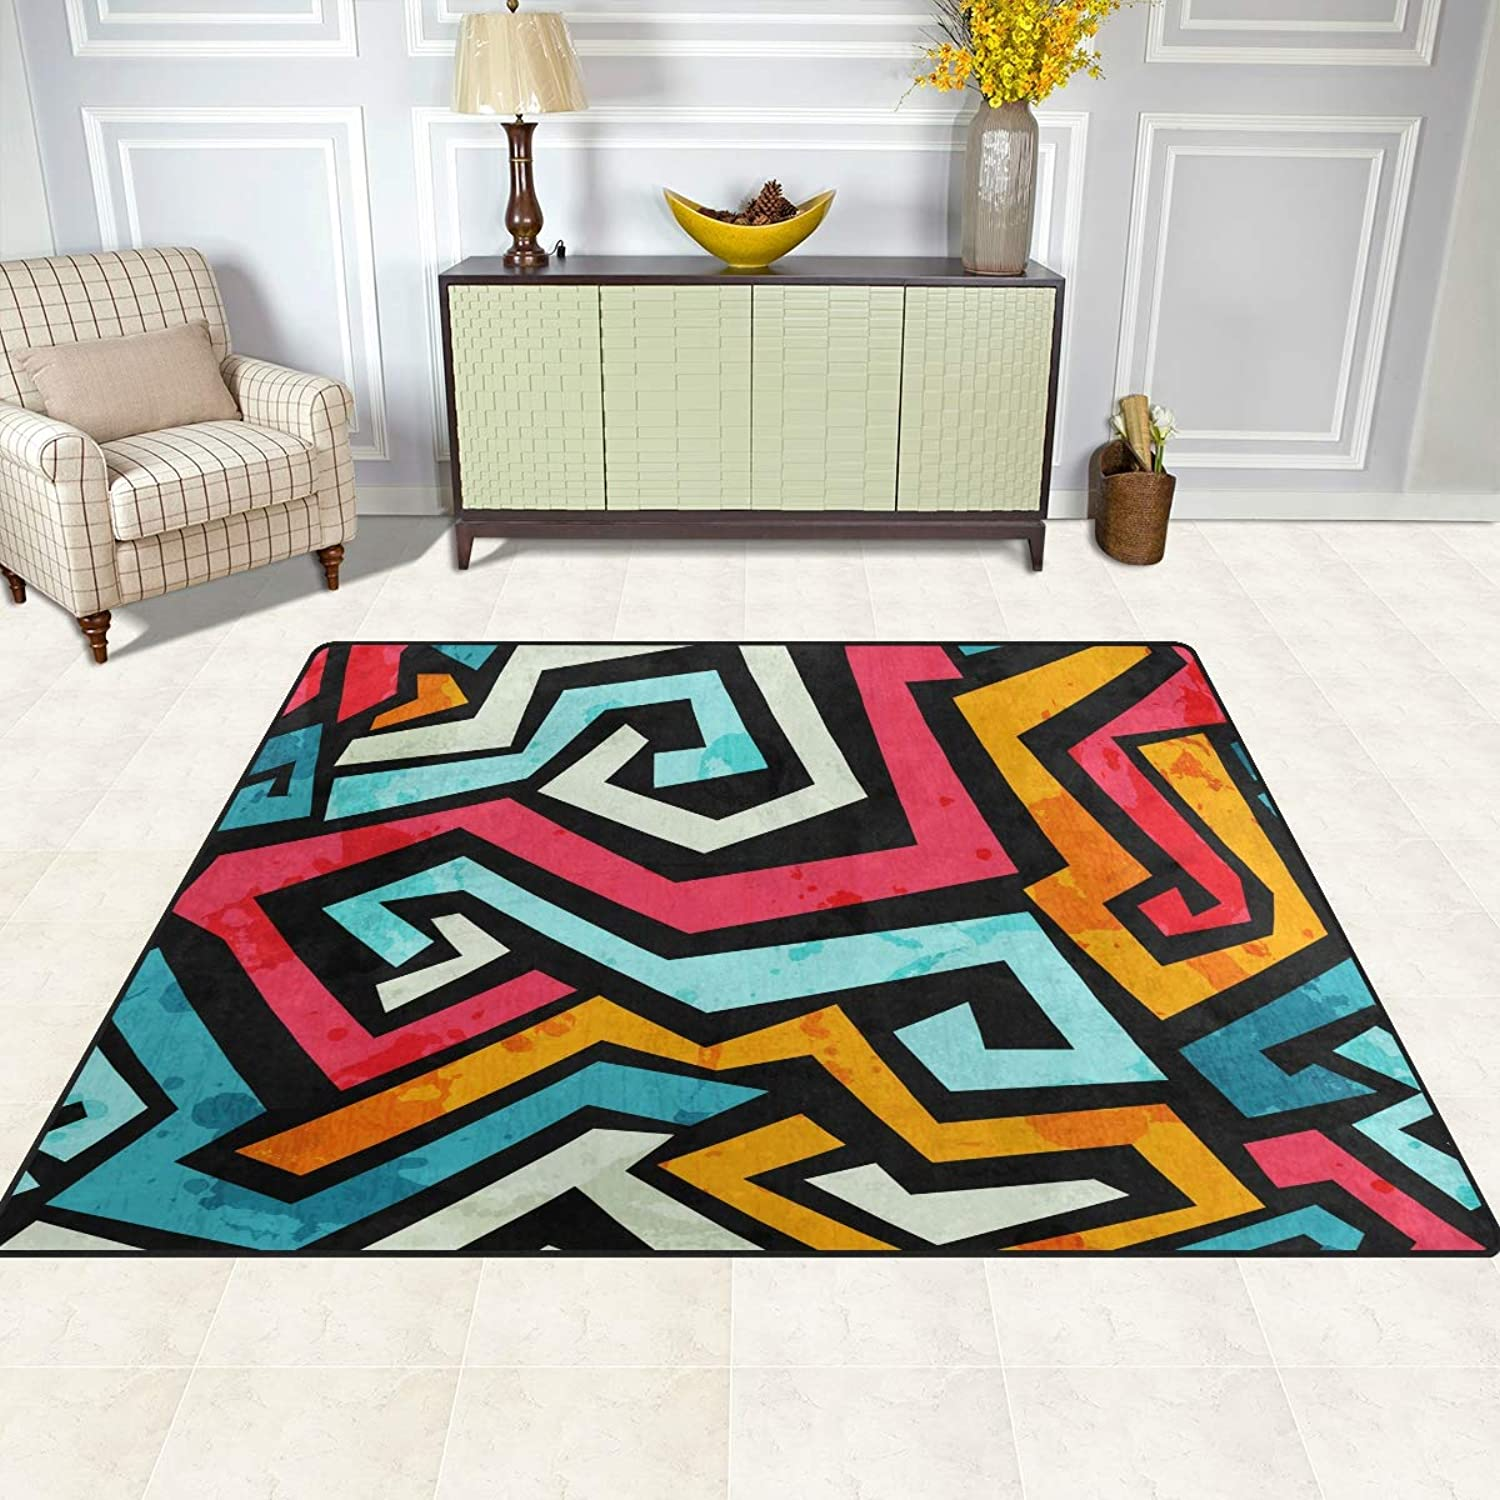 FAJRO Bright Graffiti Rugs for entryway Doormat Area Rug Multipattern Door Mat shoes Scraper Home Dec Anti-Slip Indoor Outdoor